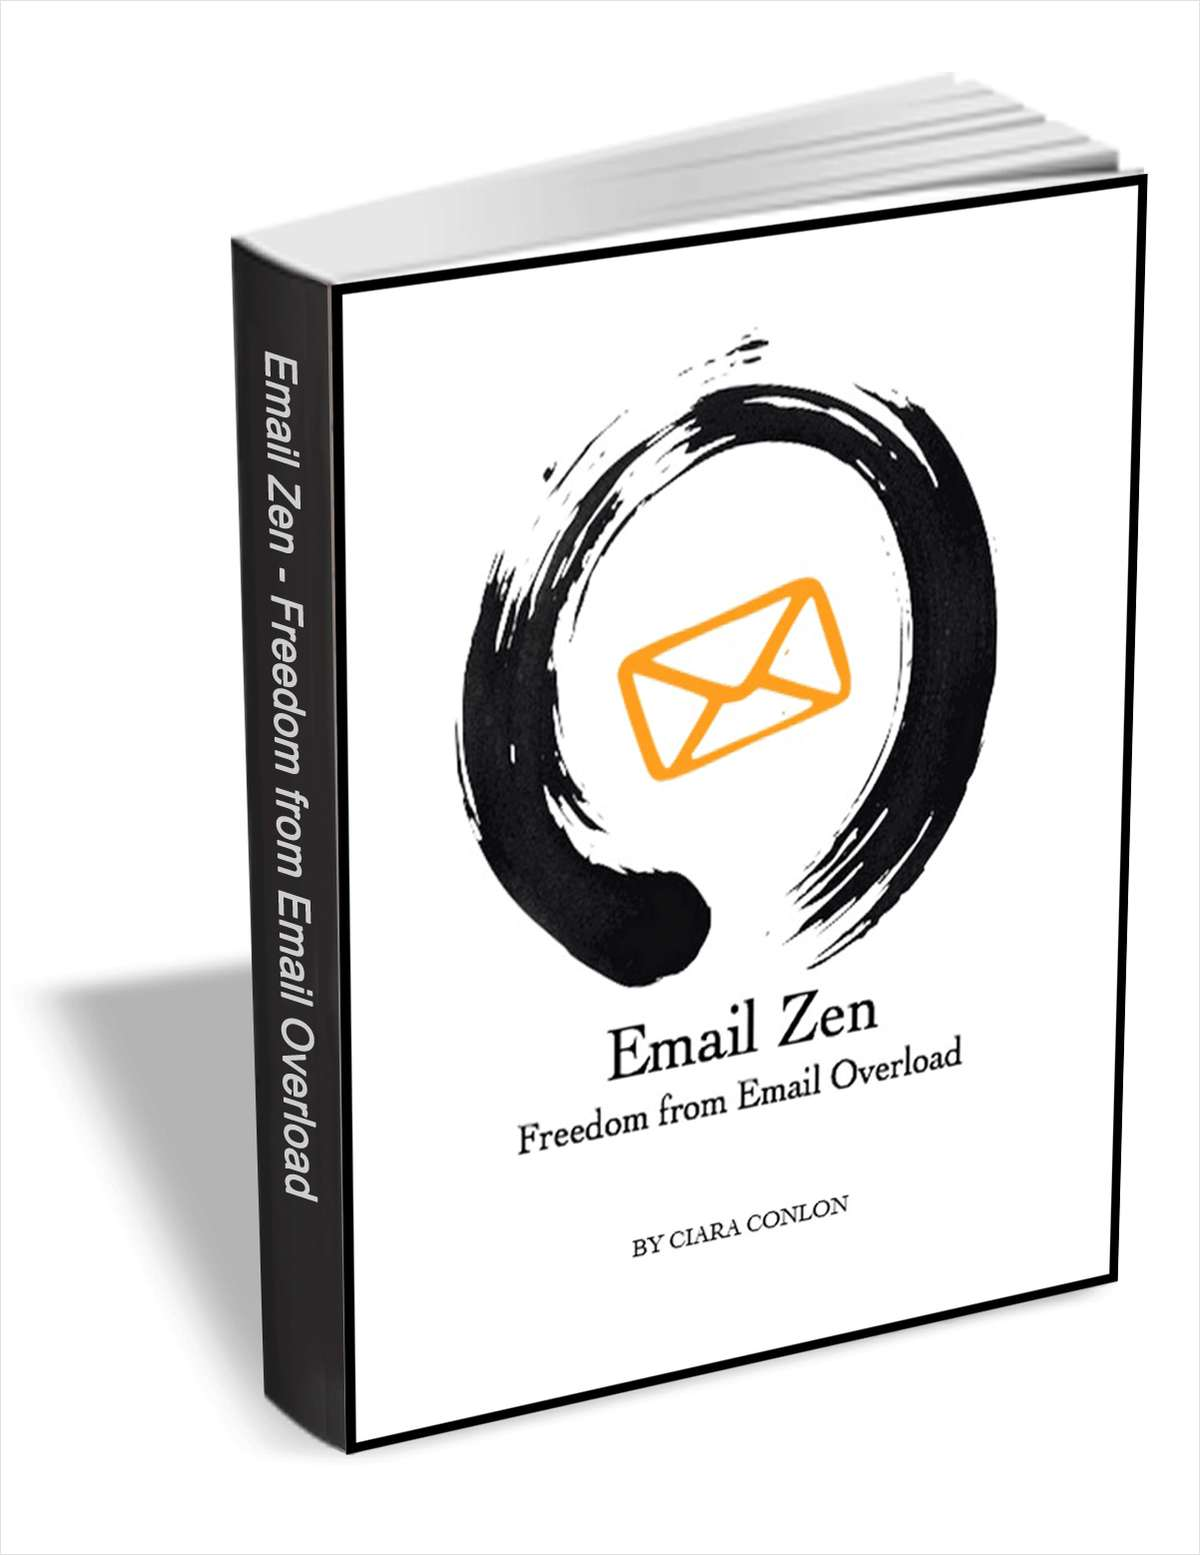 Email Zen - Freedom from Email Overload